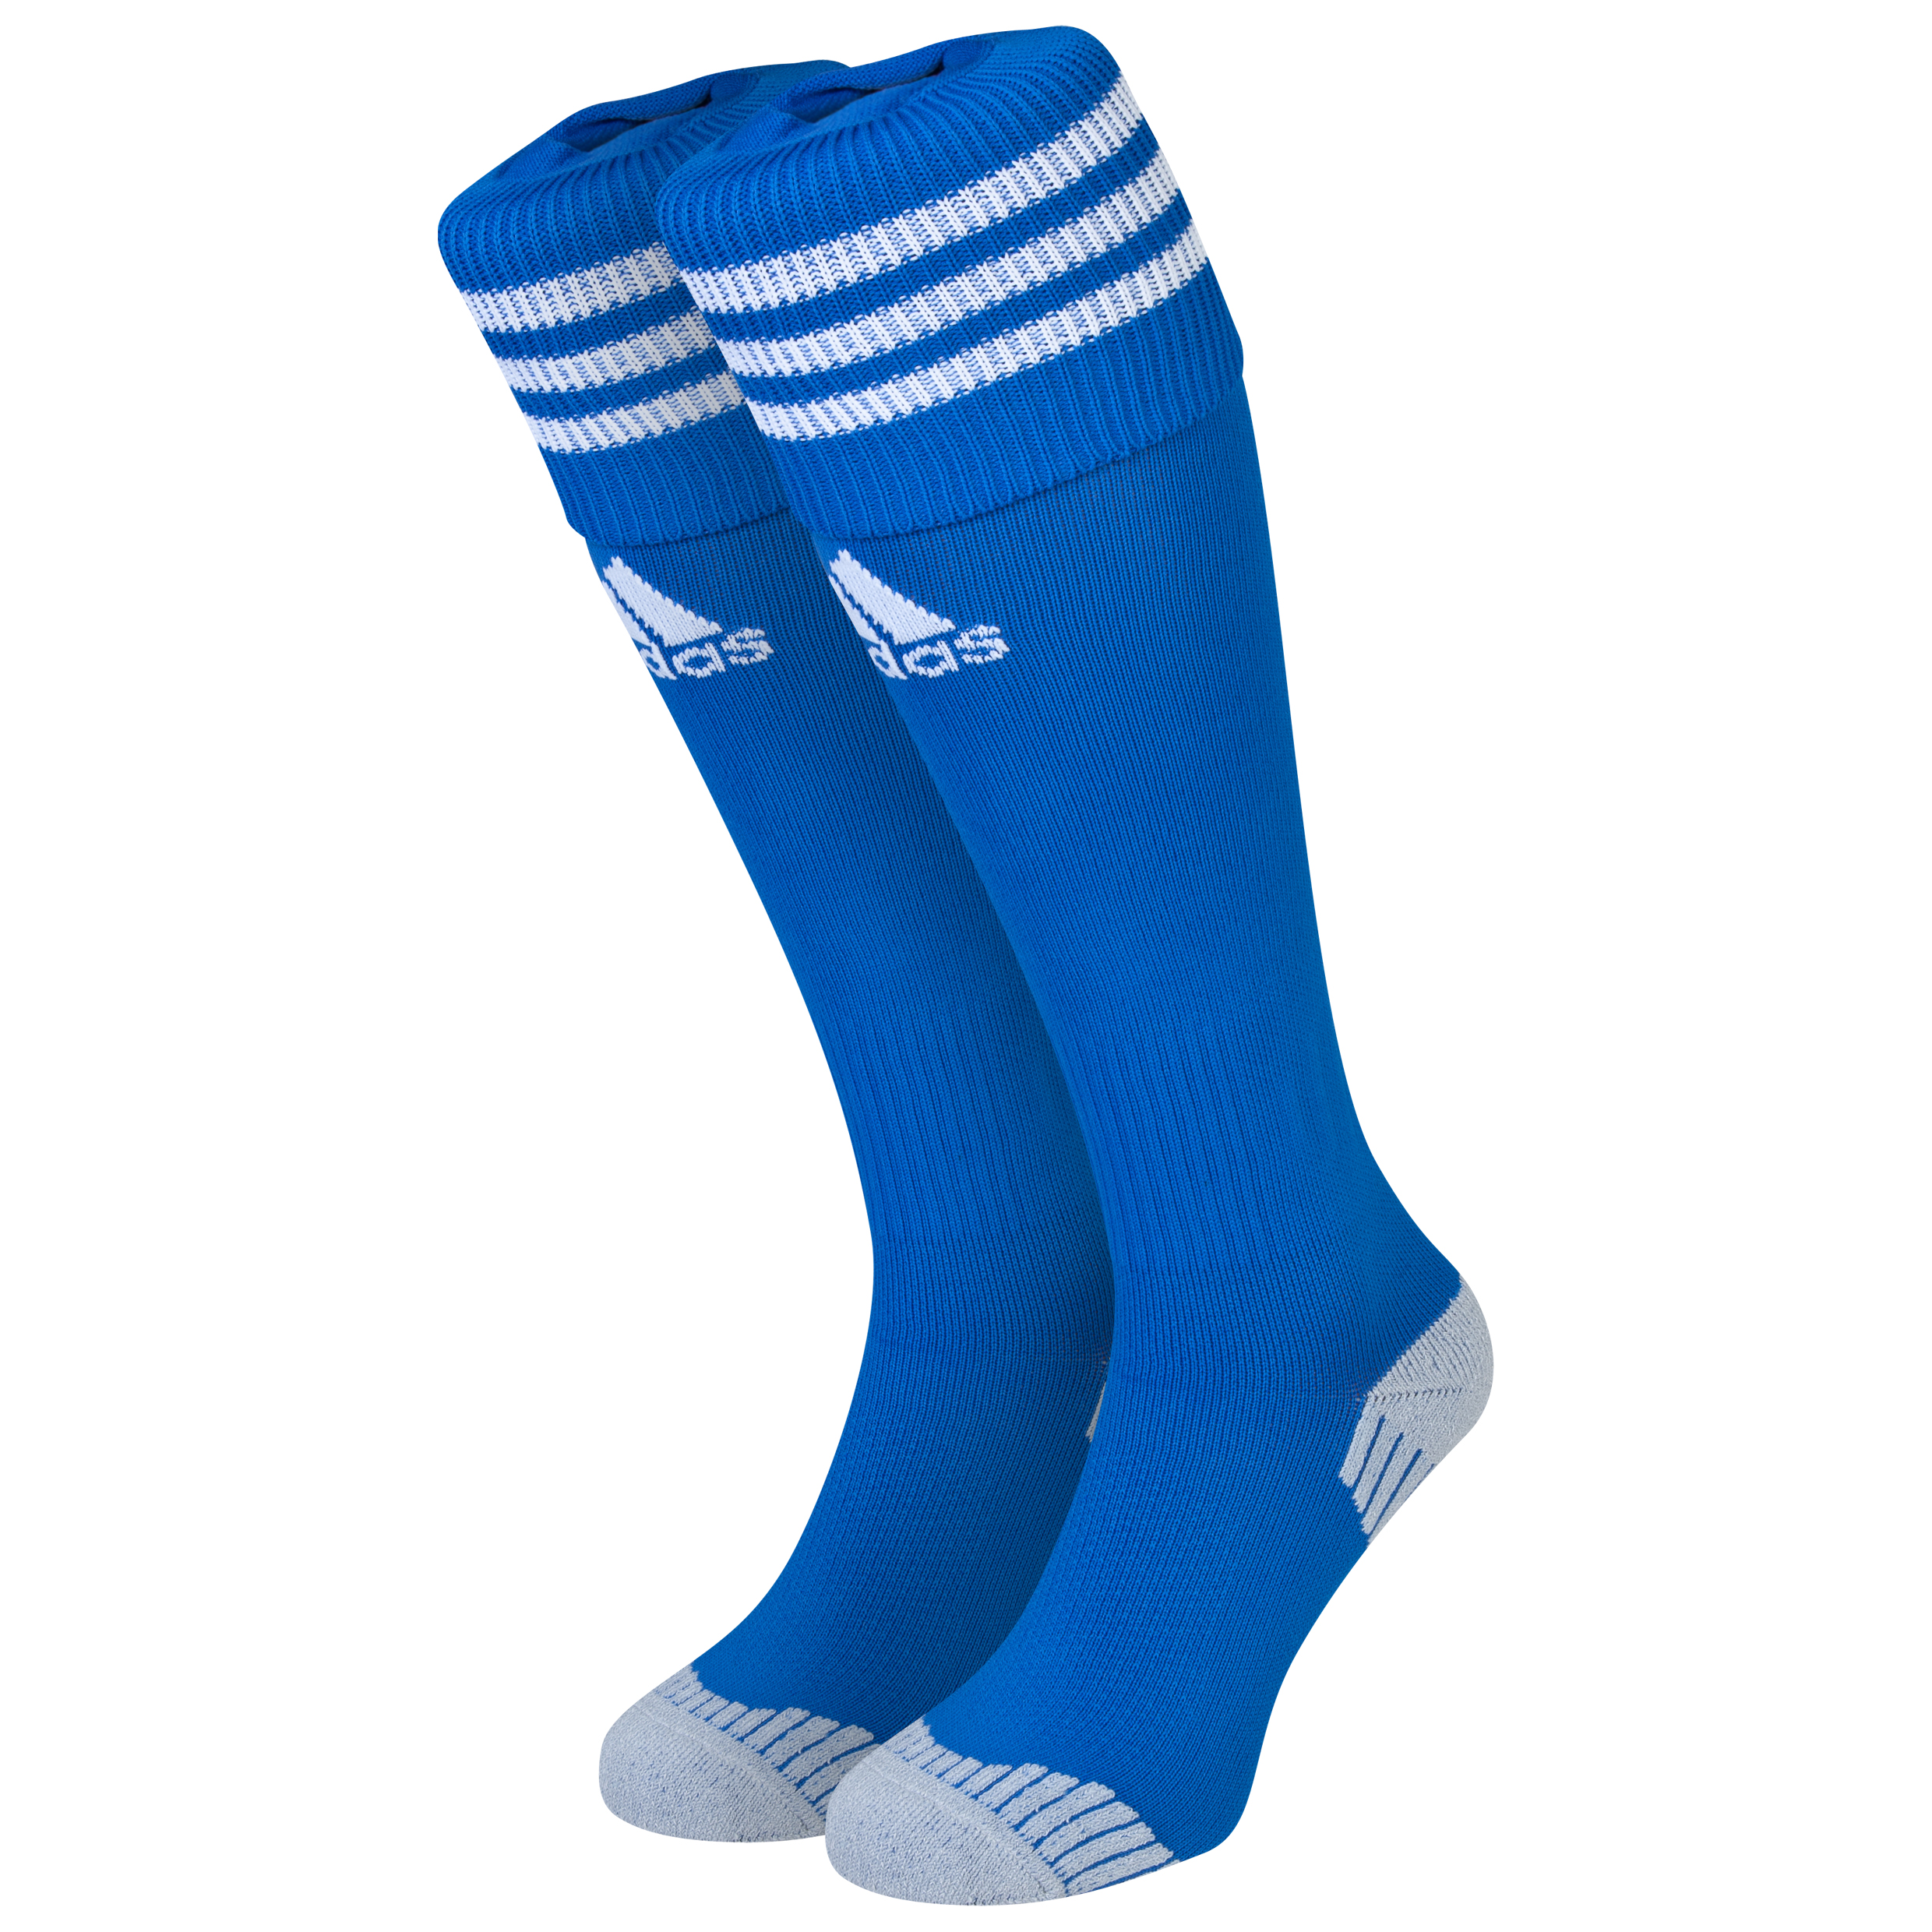 Olympique de Marseille Event Socks 2013/14